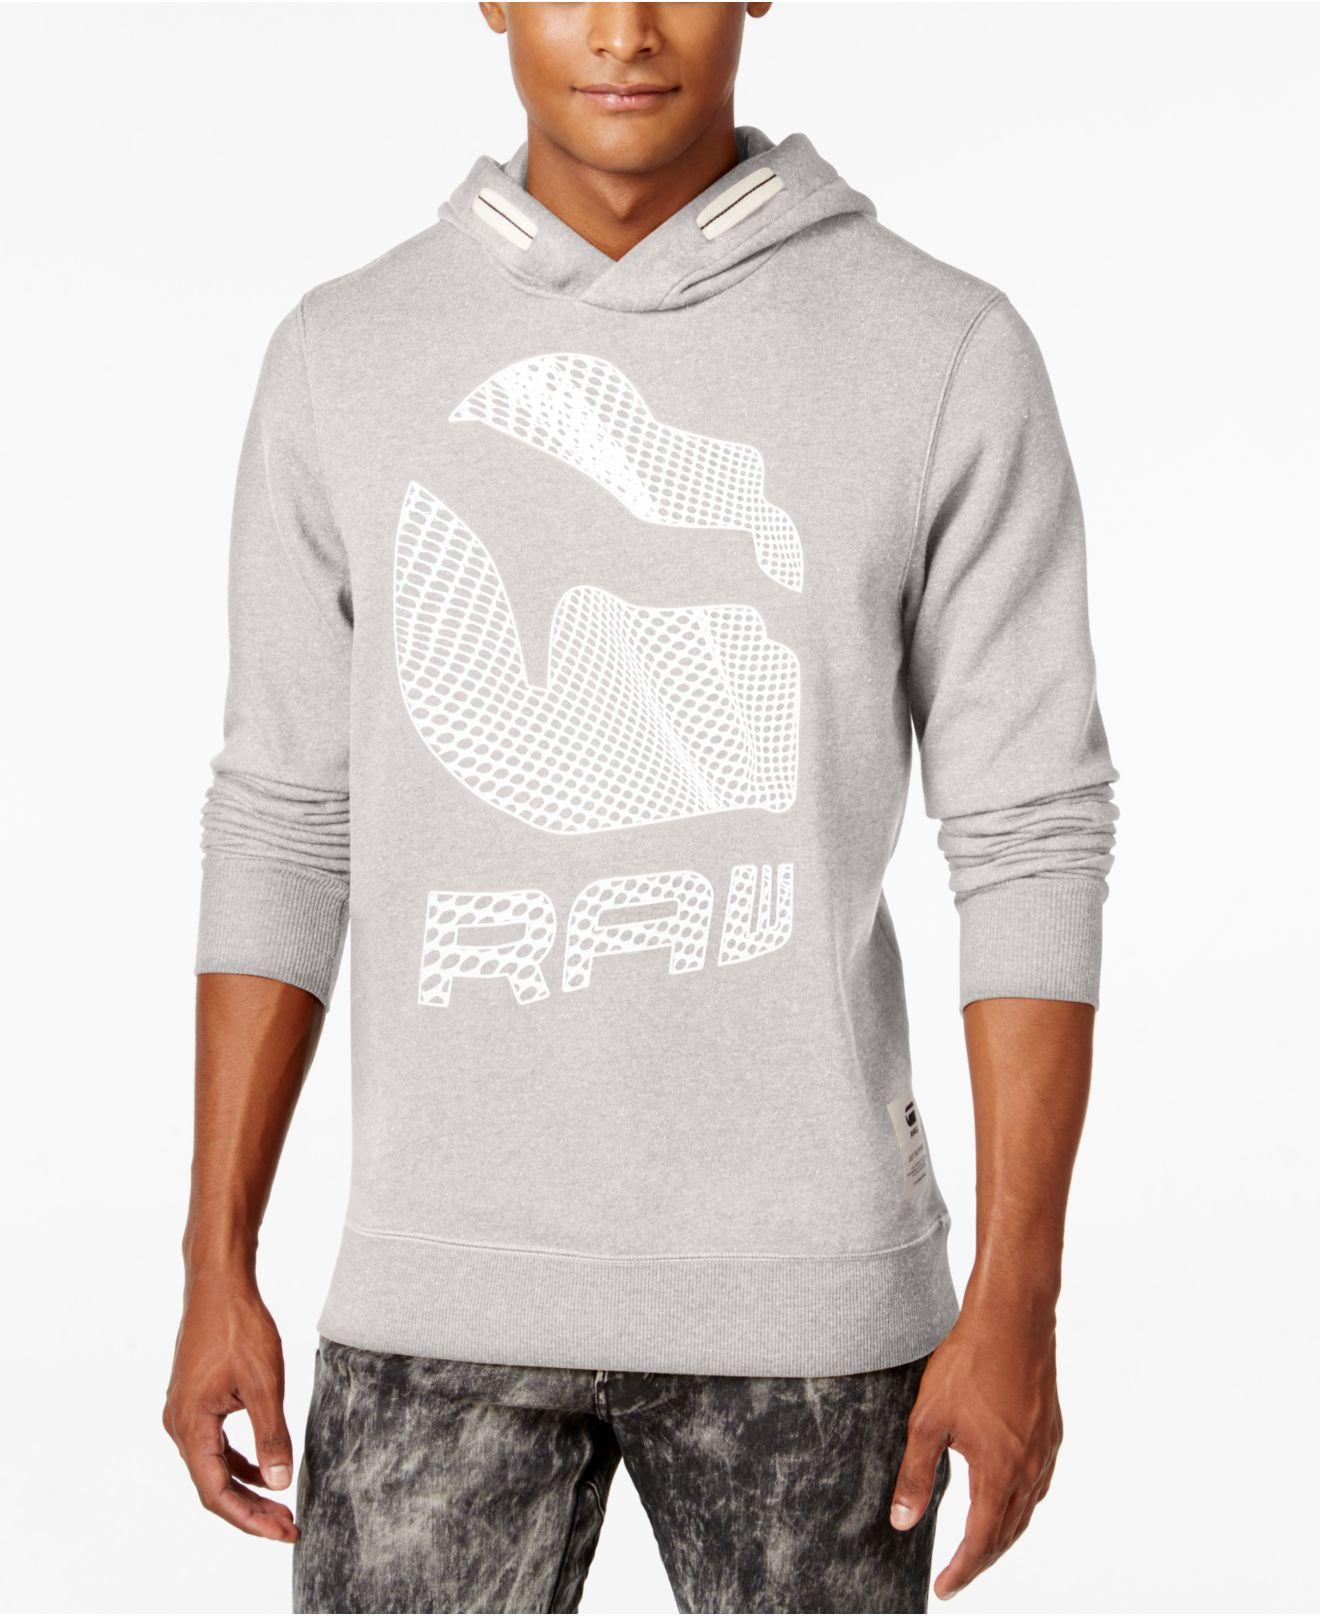 lyst g star raw men 39 s graphic print hoodie in white for men. Black Bedroom Furniture Sets. Home Design Ideas